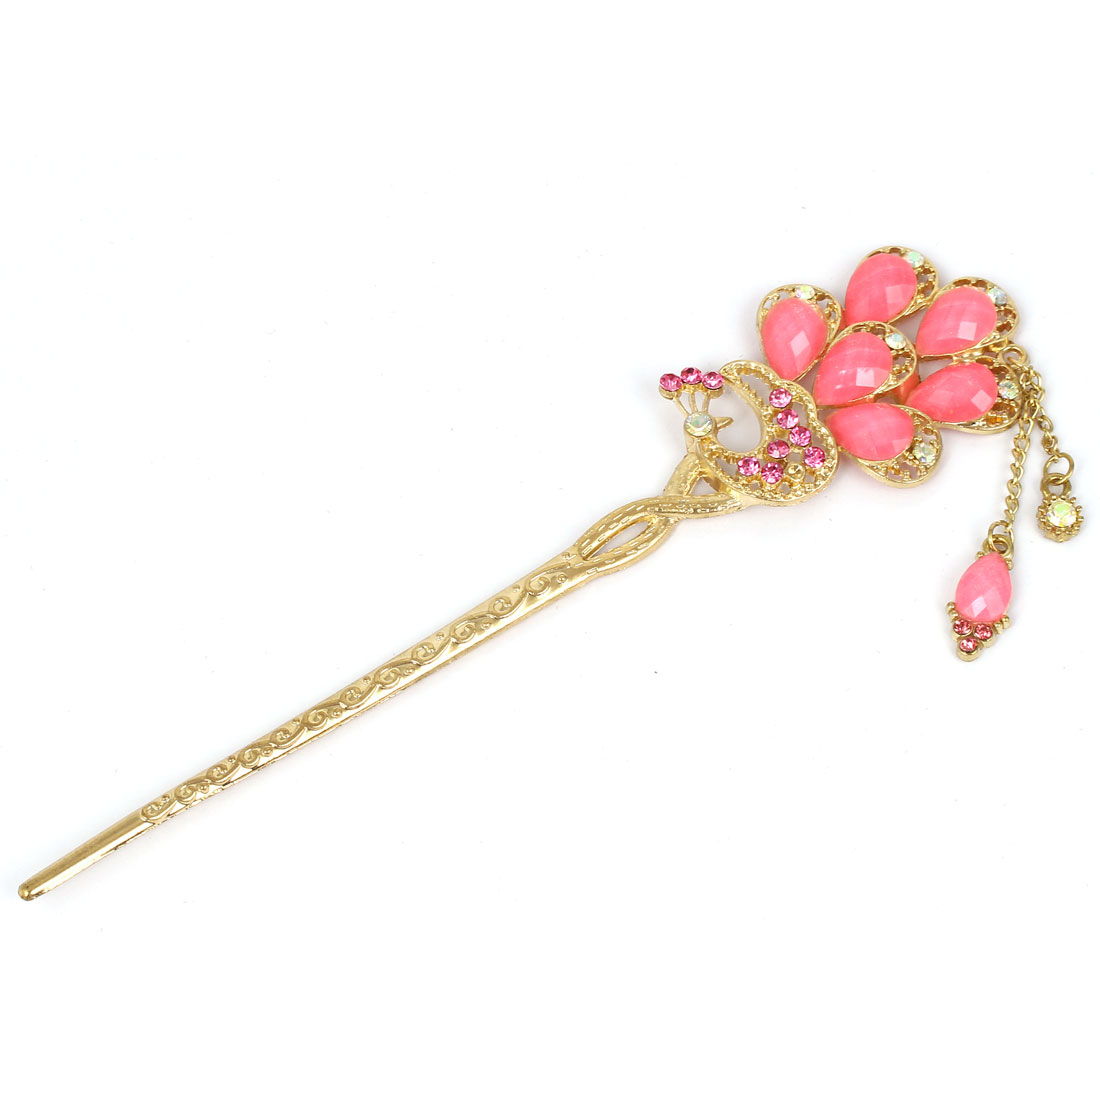 Women Faux Rhinestone Decor Peacock Shaped Hairpin Hair Clasp Stick Gold Tone Pink